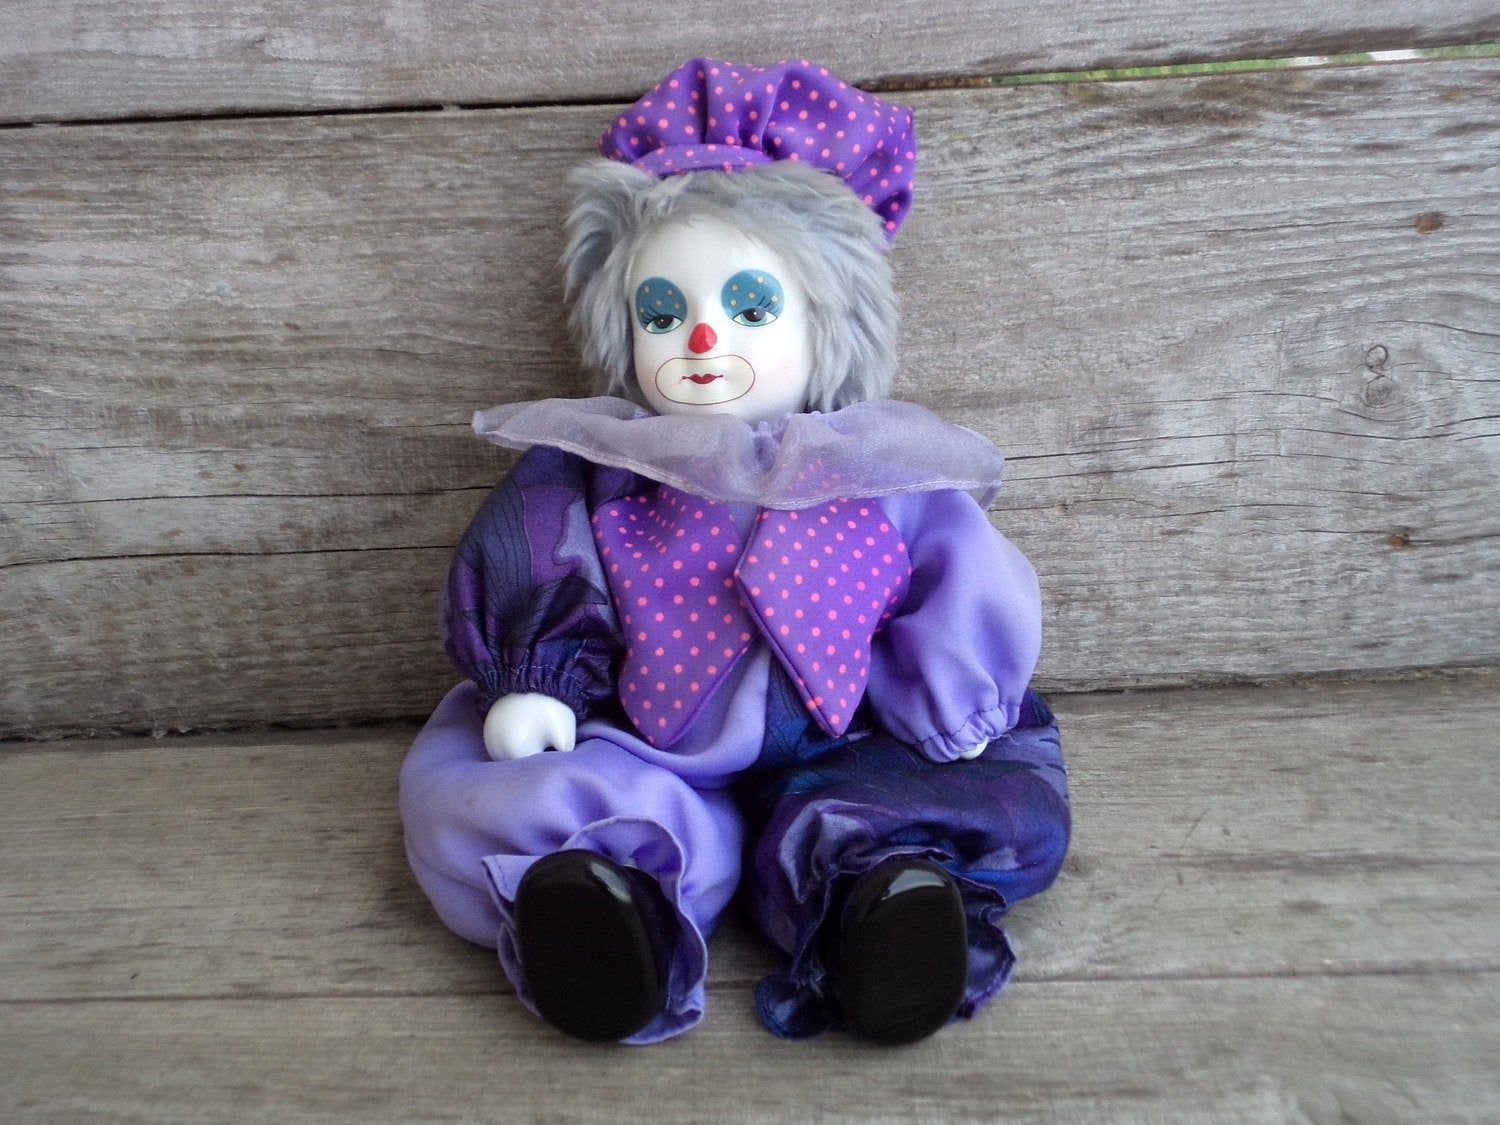 VINTAGE SMALL CLOWN DOLL WITH PORCELAIN HEAD SAND FILLED HAND PAINTED 1970s /80s | eBay